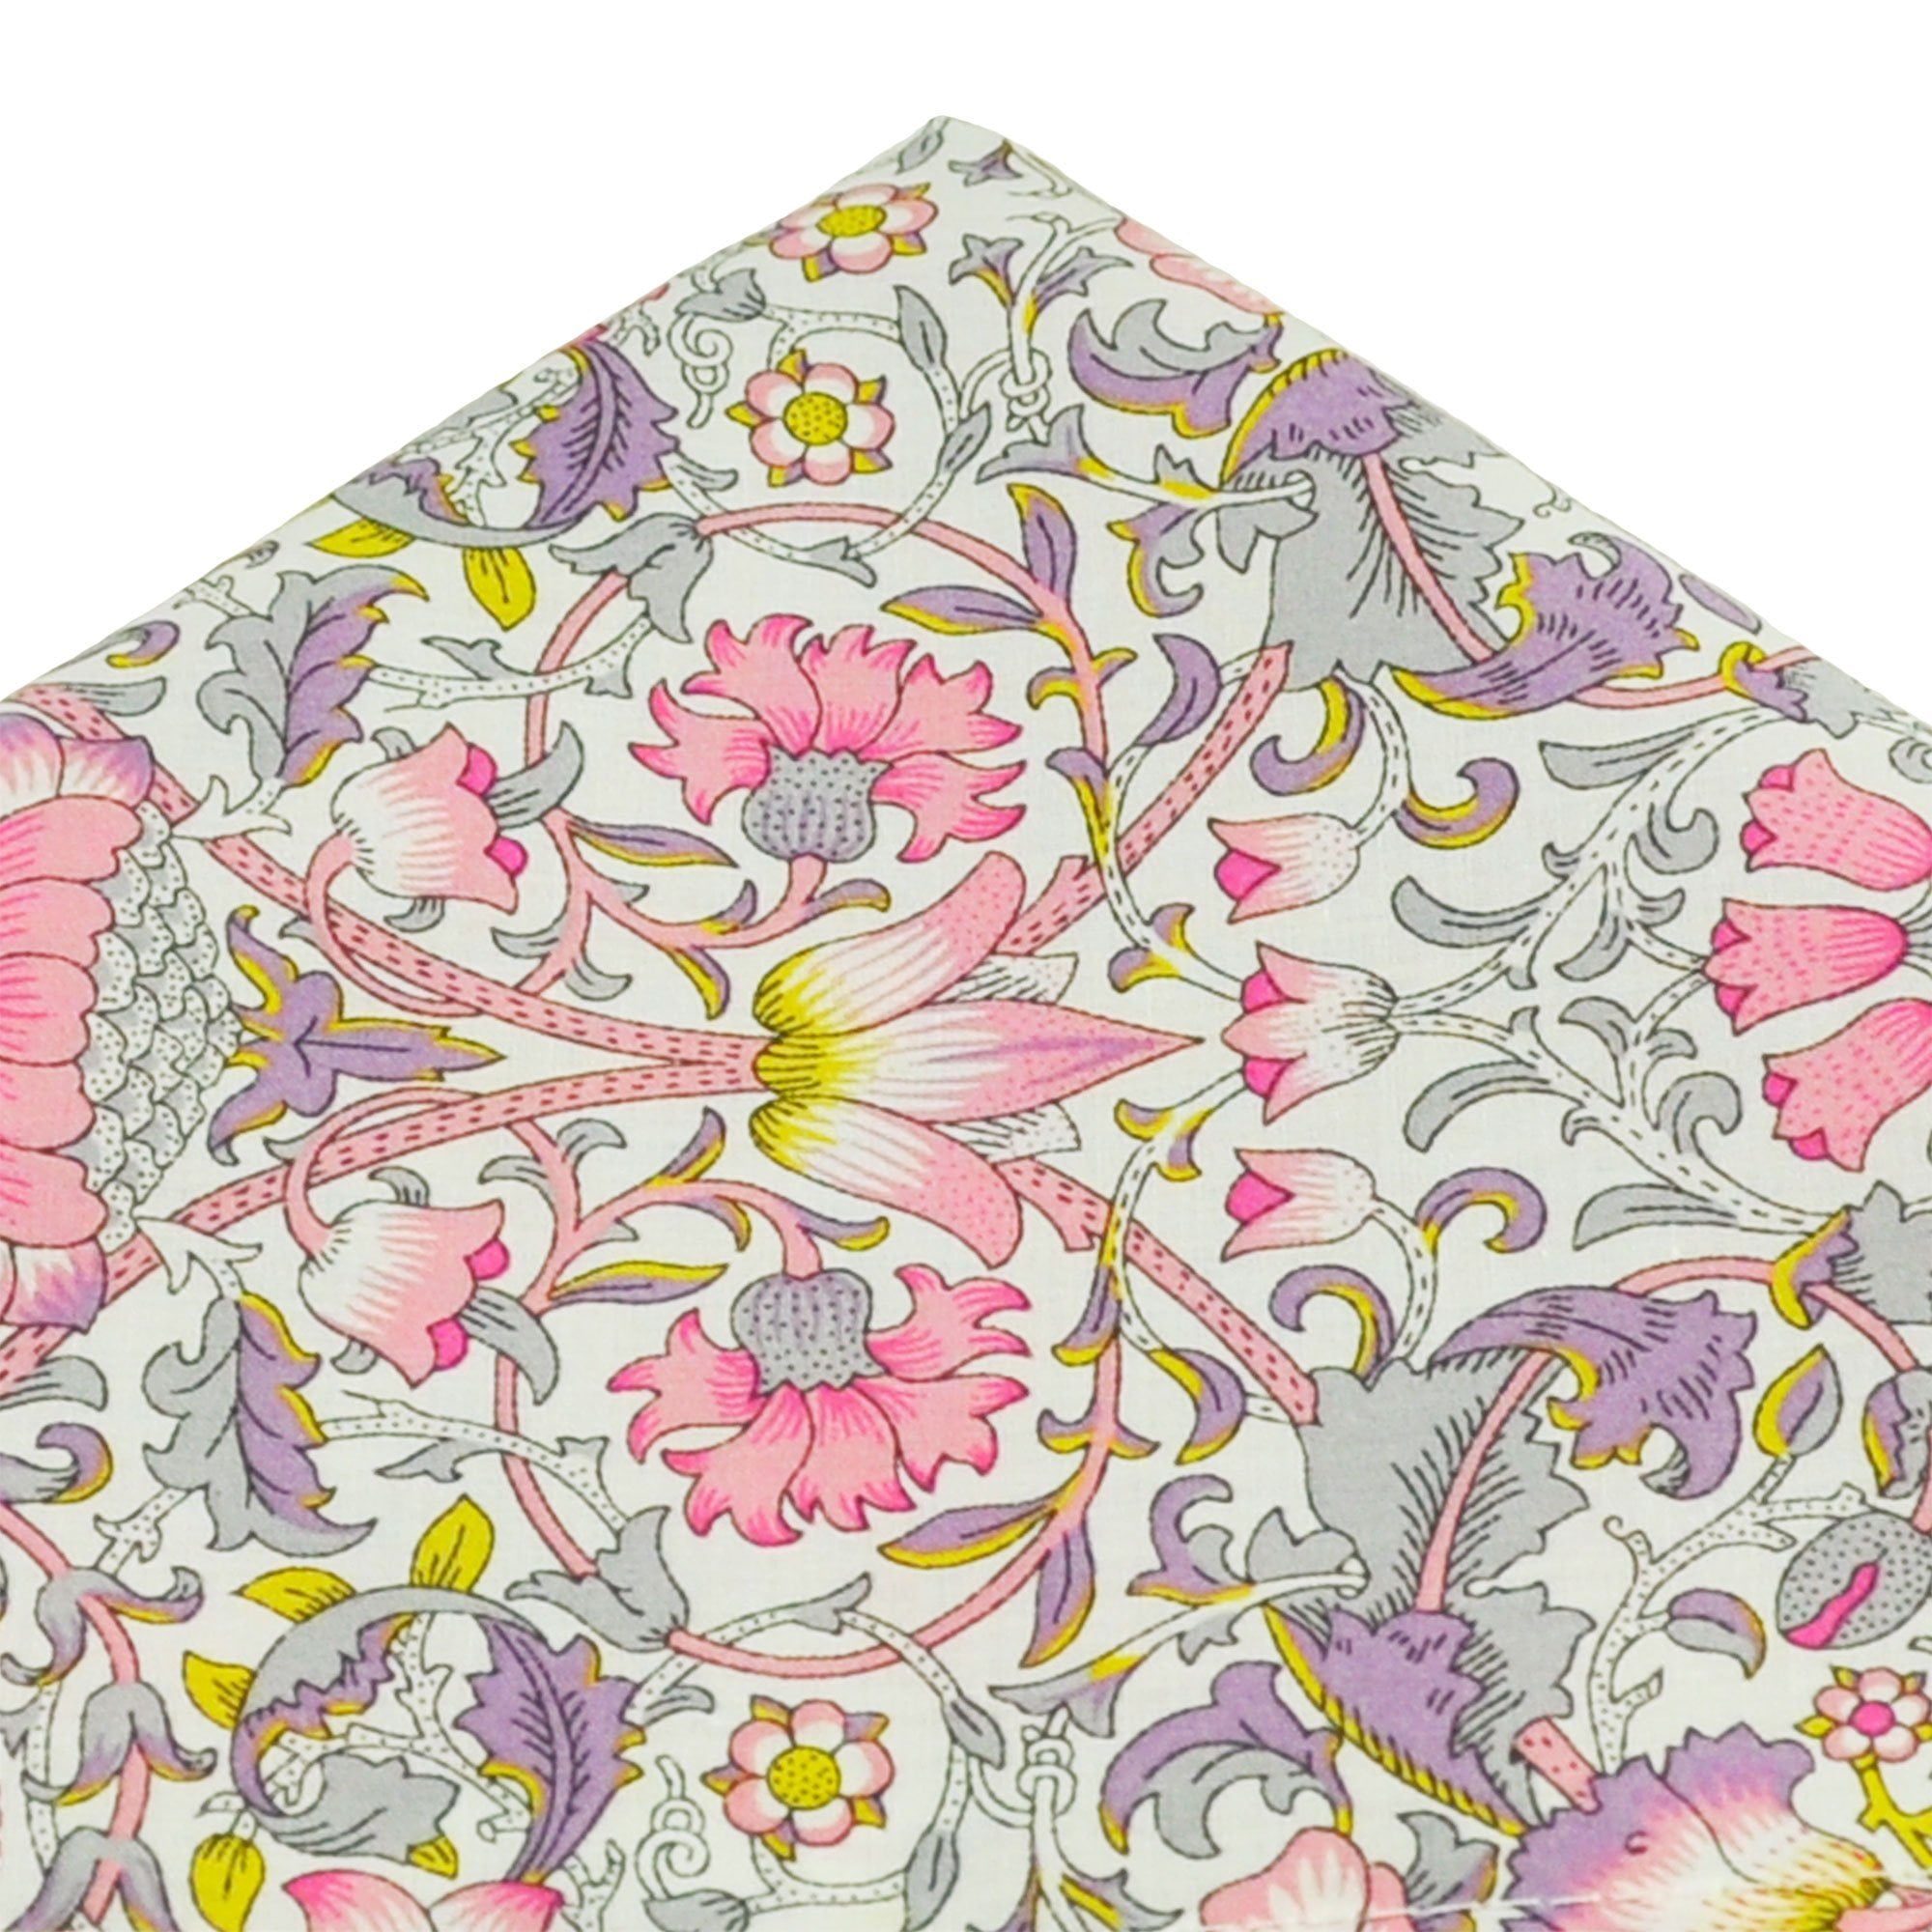 Purple Green Yellow Orange Pink Silver Red Patterned Pocket Square Handkerchief